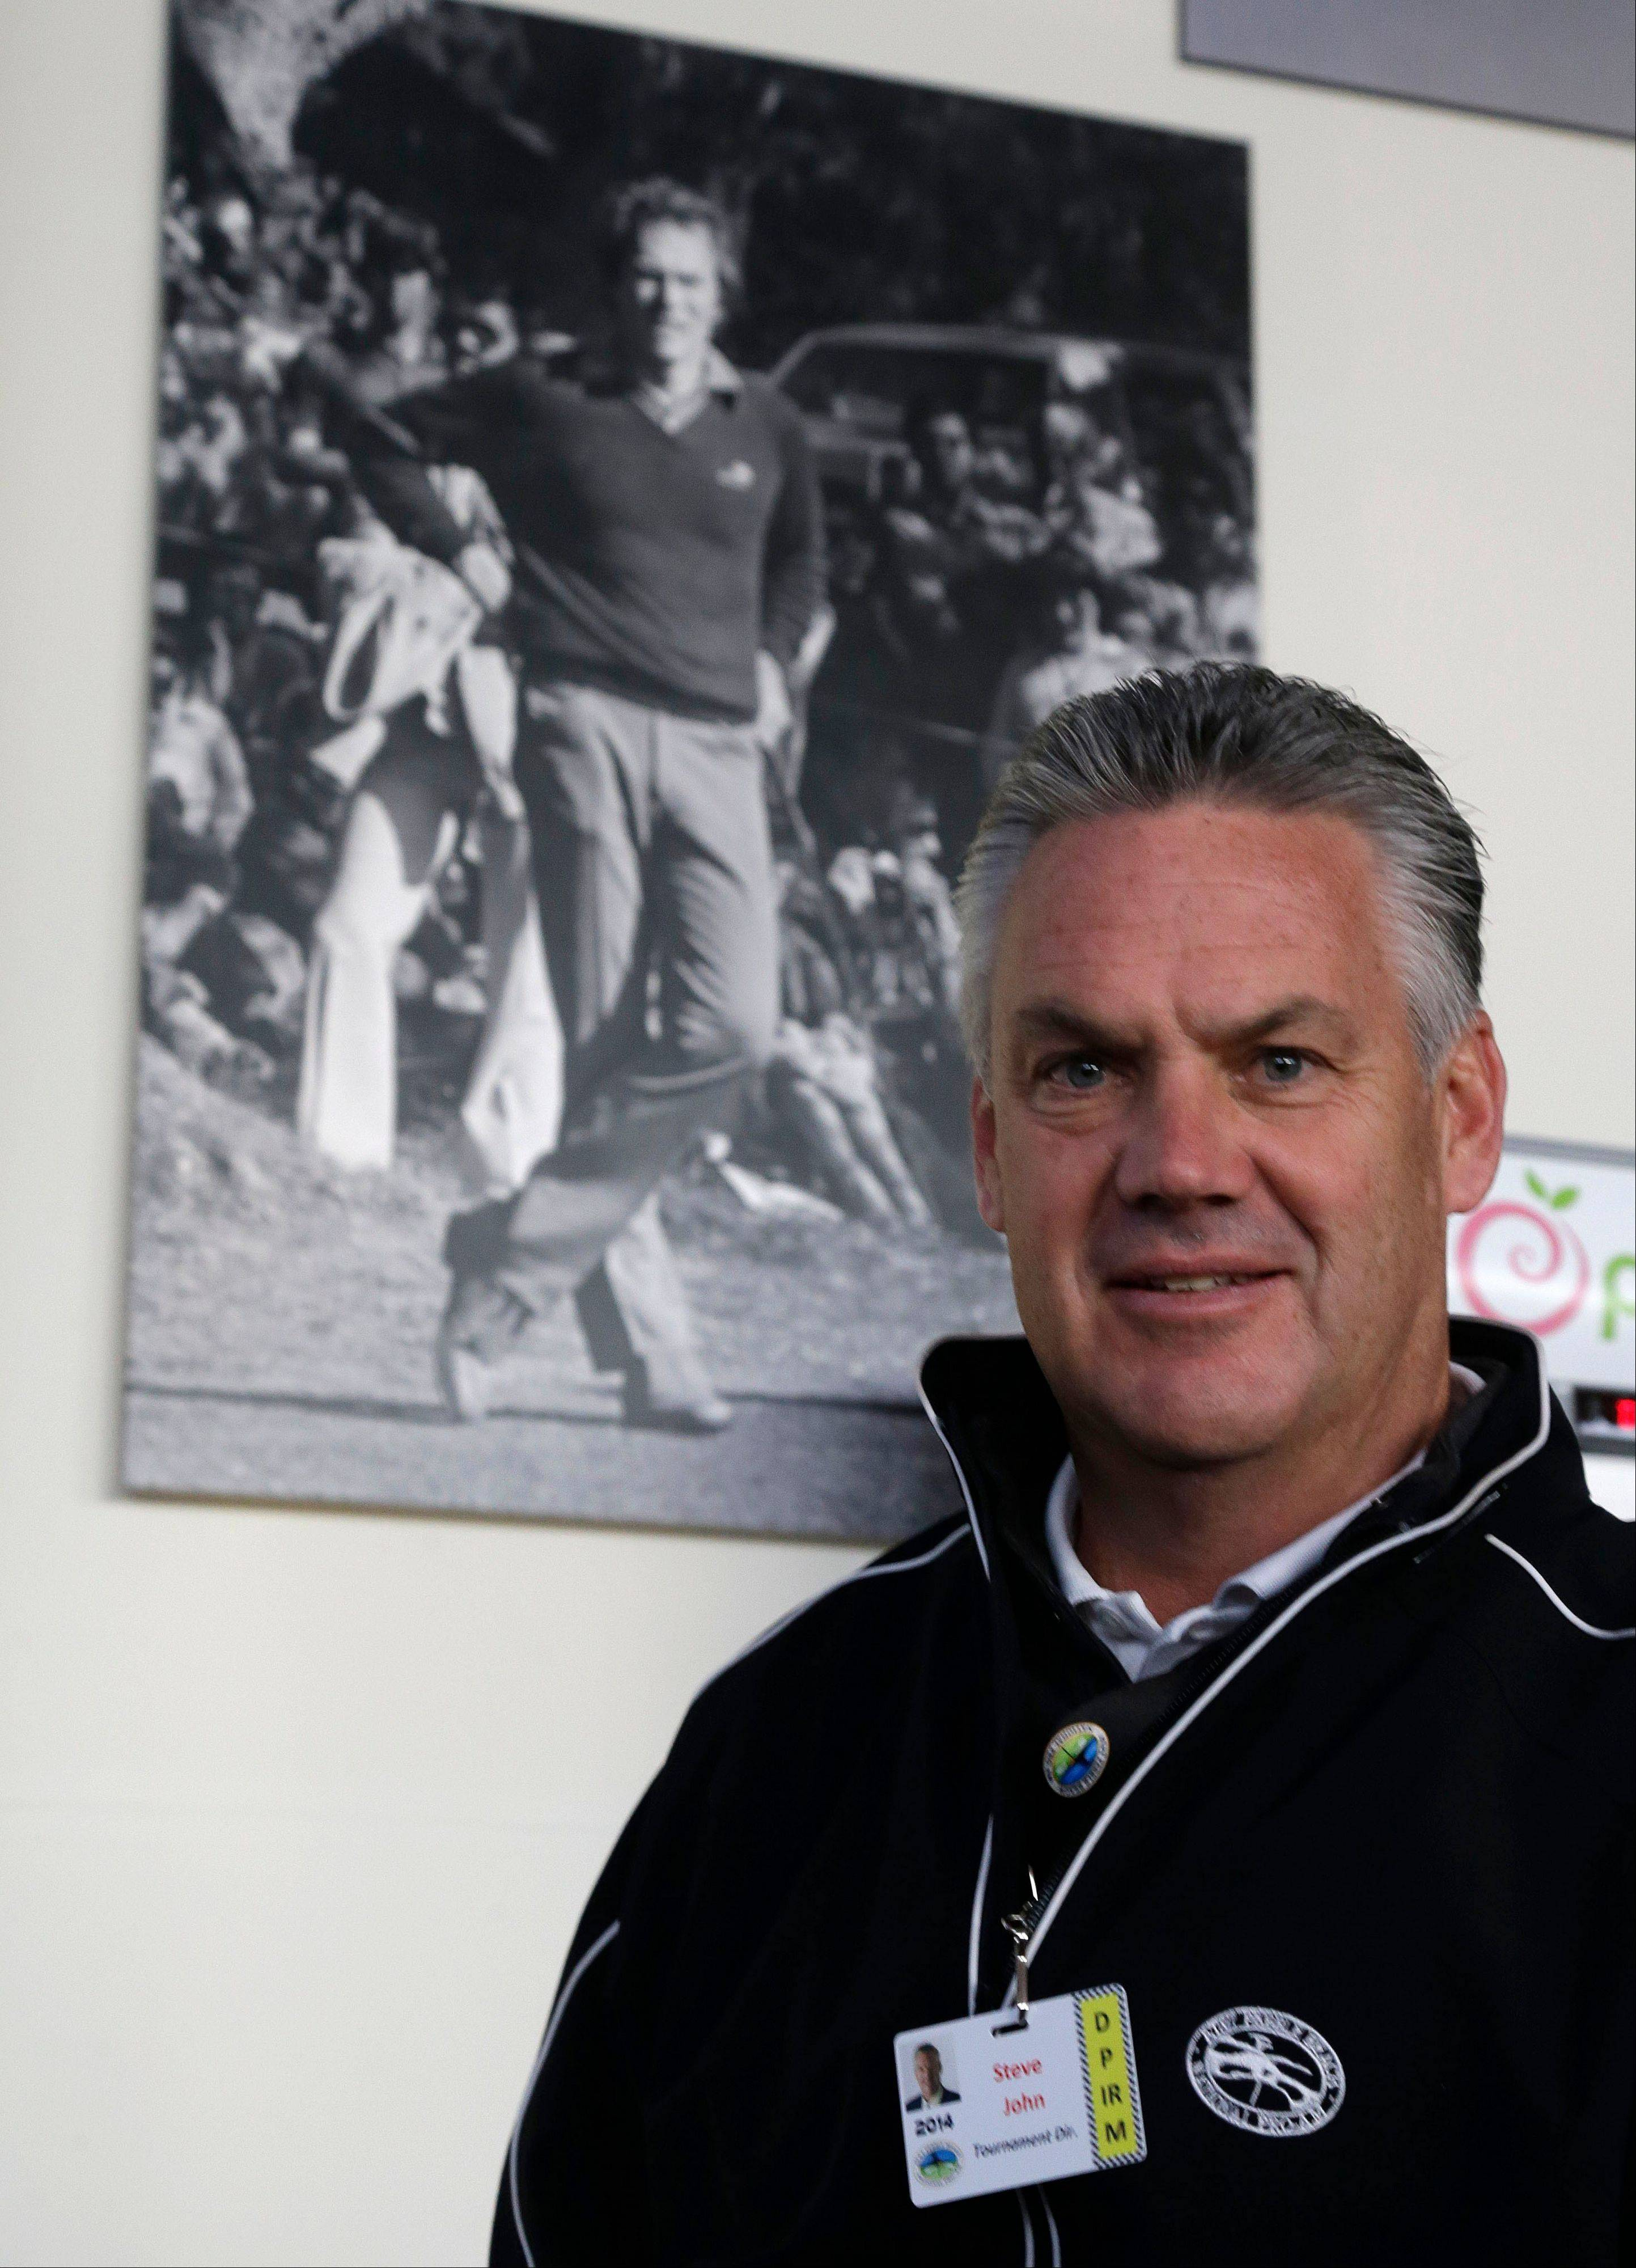 Steve John, CEO of the Monterey Peninsula Foundation and tournament director of the AT&T Pebble Beach Pro-Am golf tournament, stands beneath a photograph of Clint Eastwood Friday in Pebble Beach, Calif. John was choking on a piece of cheese at a volunteer party when Eastwood gave him the Heimlech maneuver.